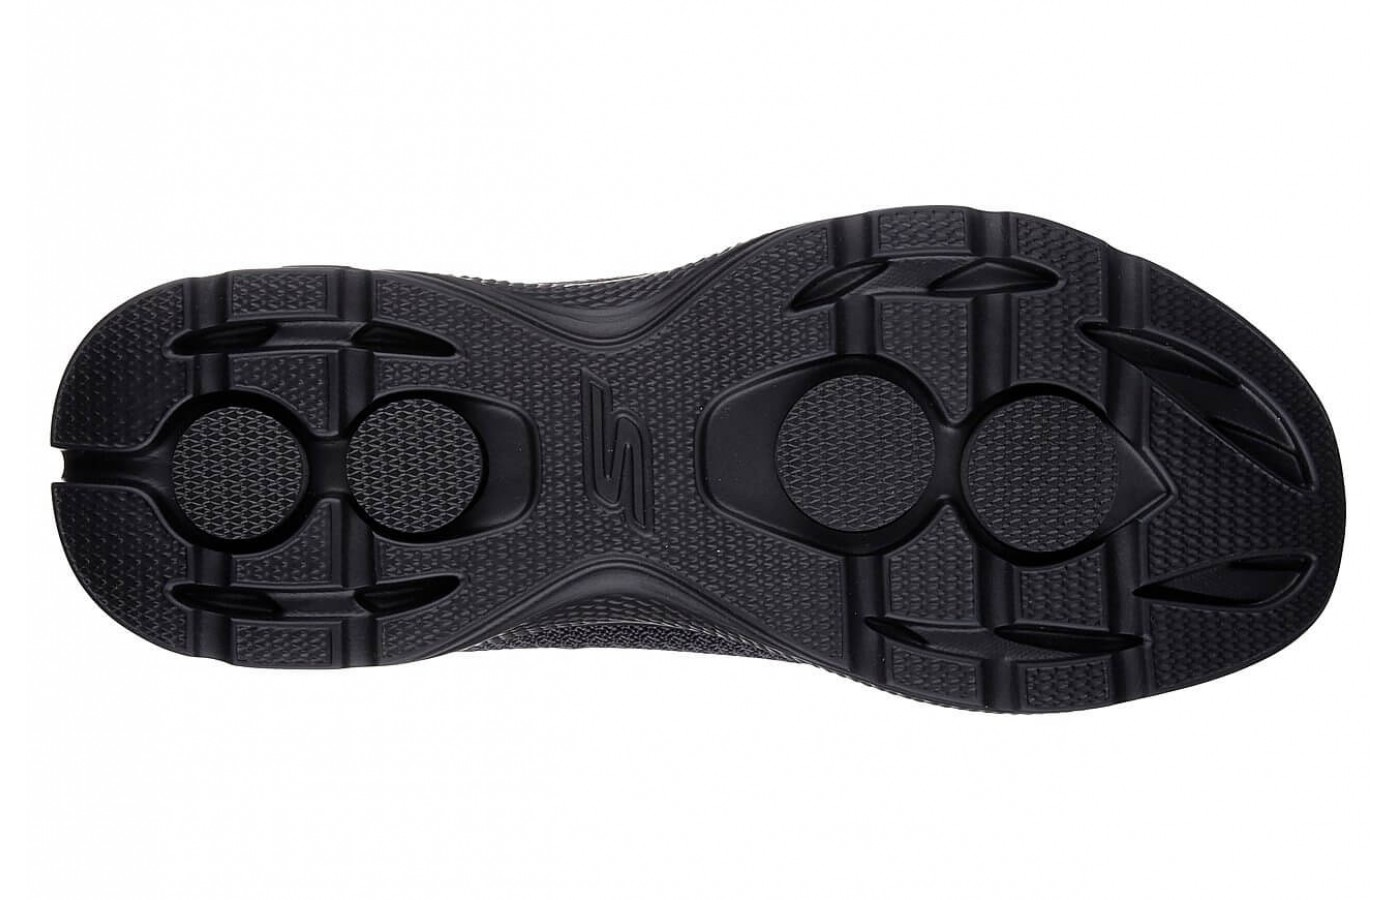 A bottom view of the Skechers GoWalk 4.